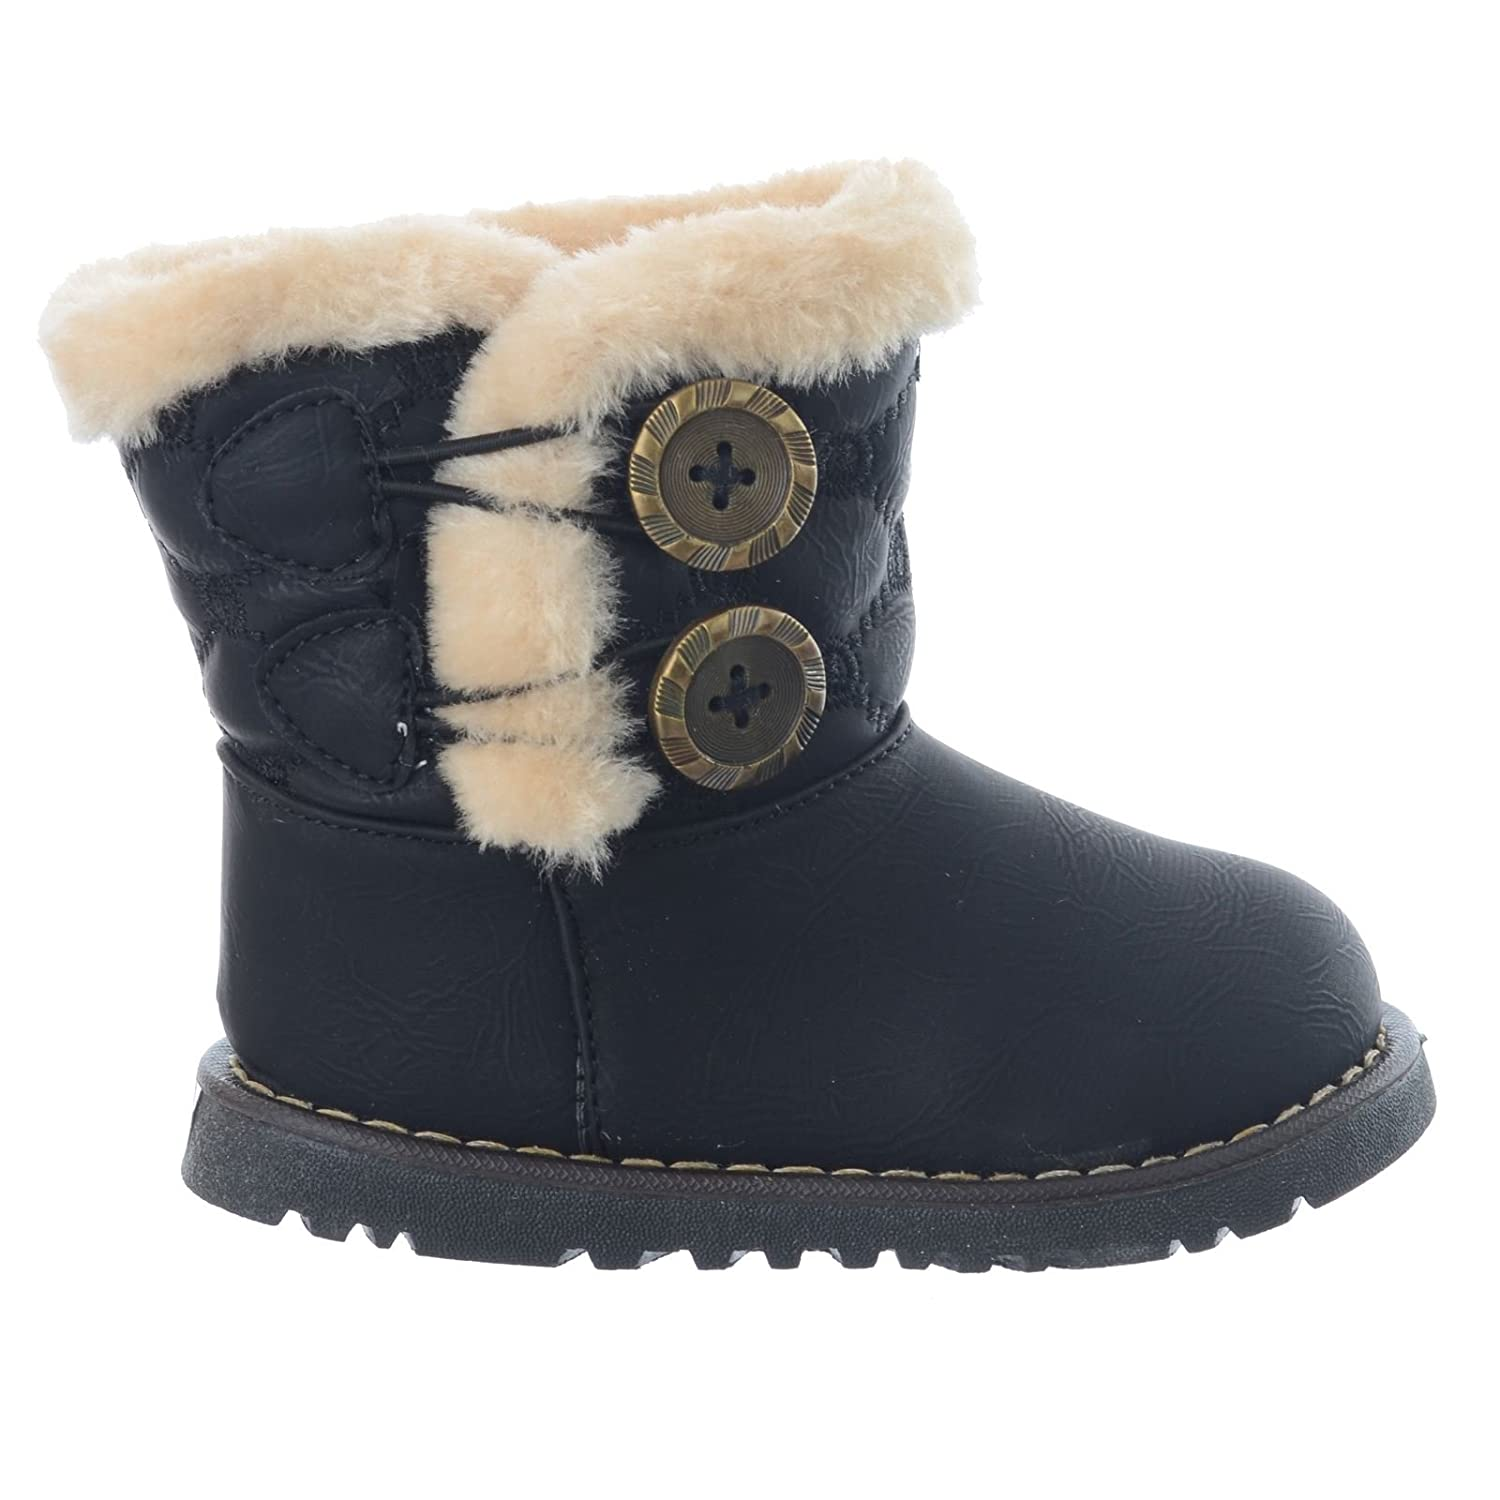 Miss Image UK Girls Infant Toddler Quilted Button Boots Shoes Warm Fur  Lined Winter Size 3-8 [Black UK 3 Infant]: Amazon.co.uk: Shoes & Bags